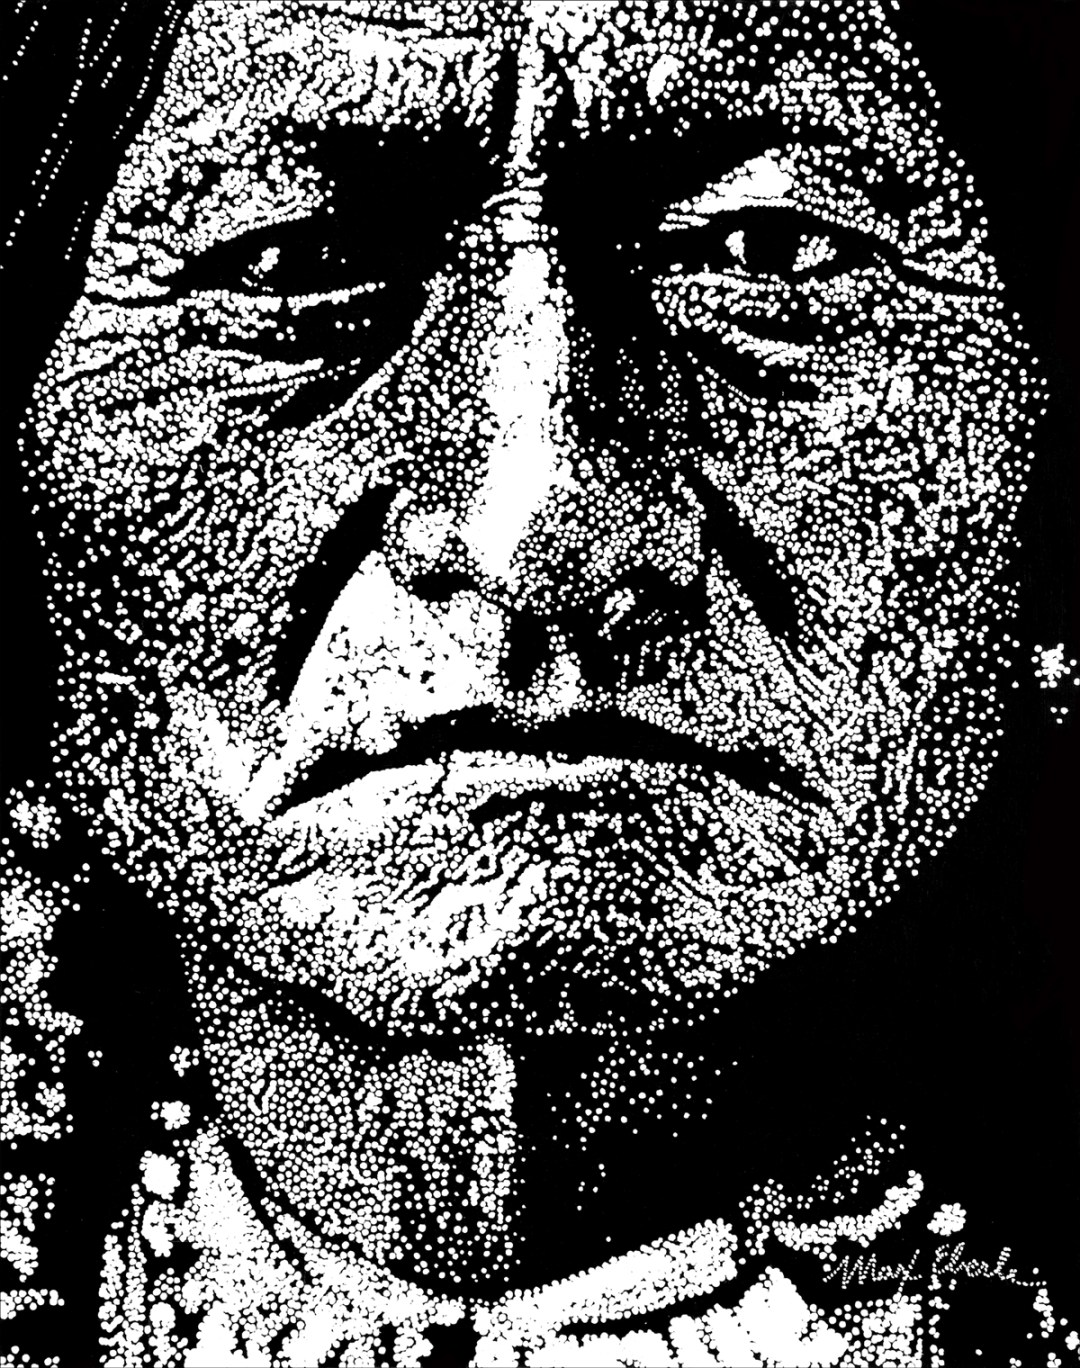 Sitting Bull painting by Max Eberle. 48 by 38 inches, acrylic on canvas